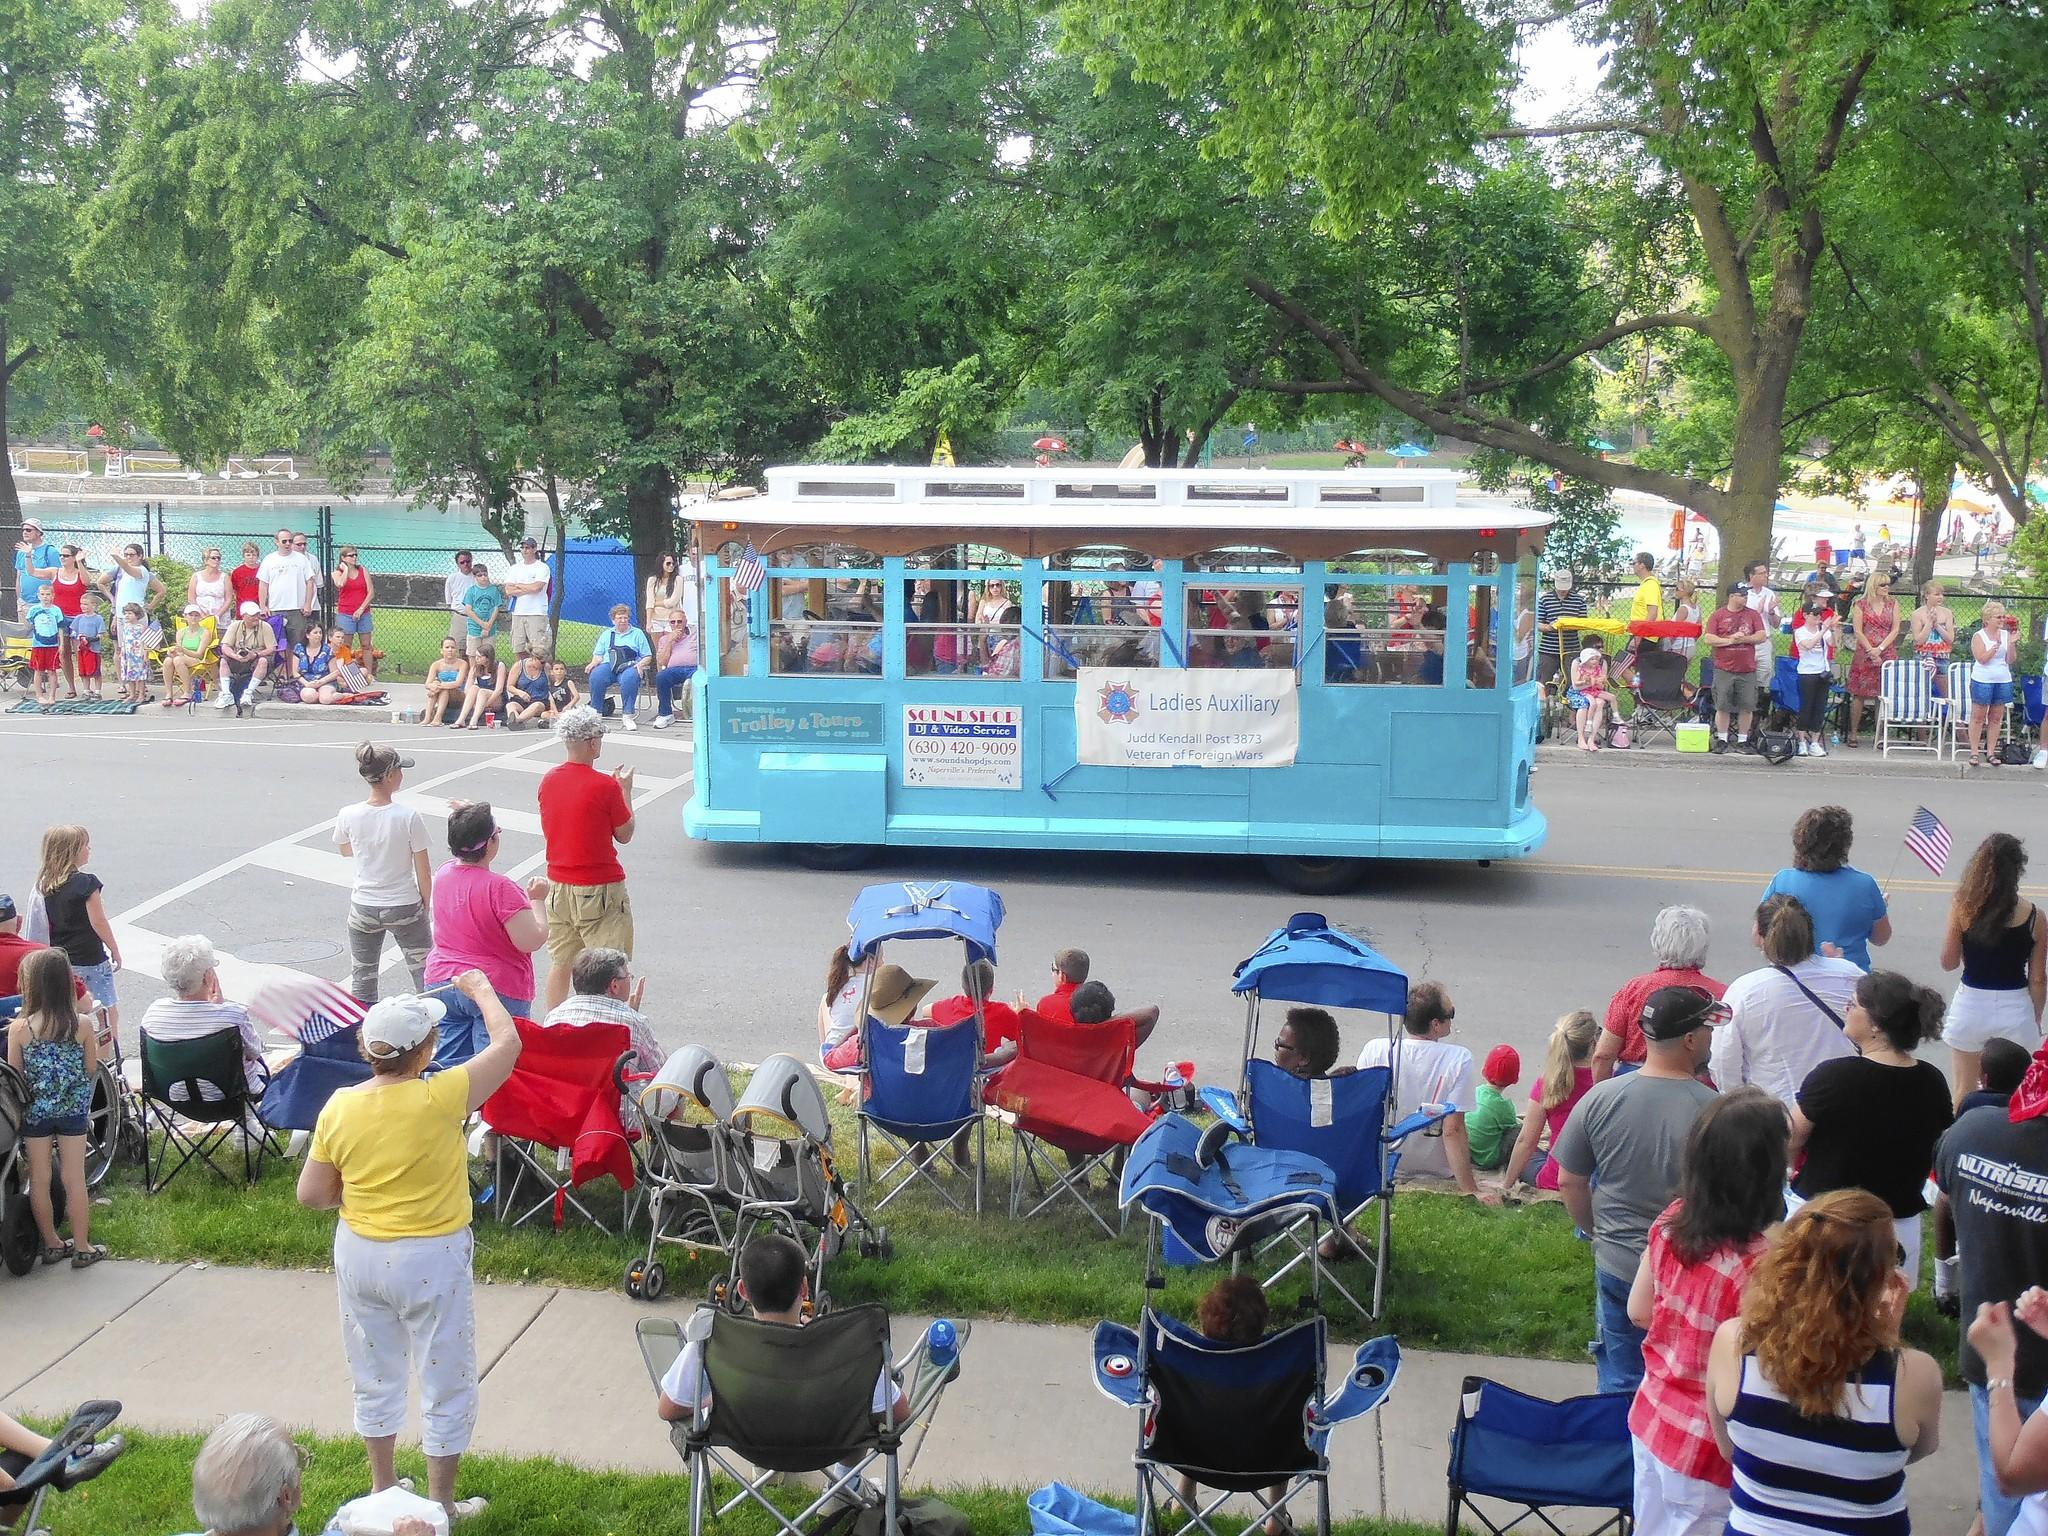 World War II veterans from Downers Grove will take a trolley ride down Main Street as part of the Fourth of July parade.